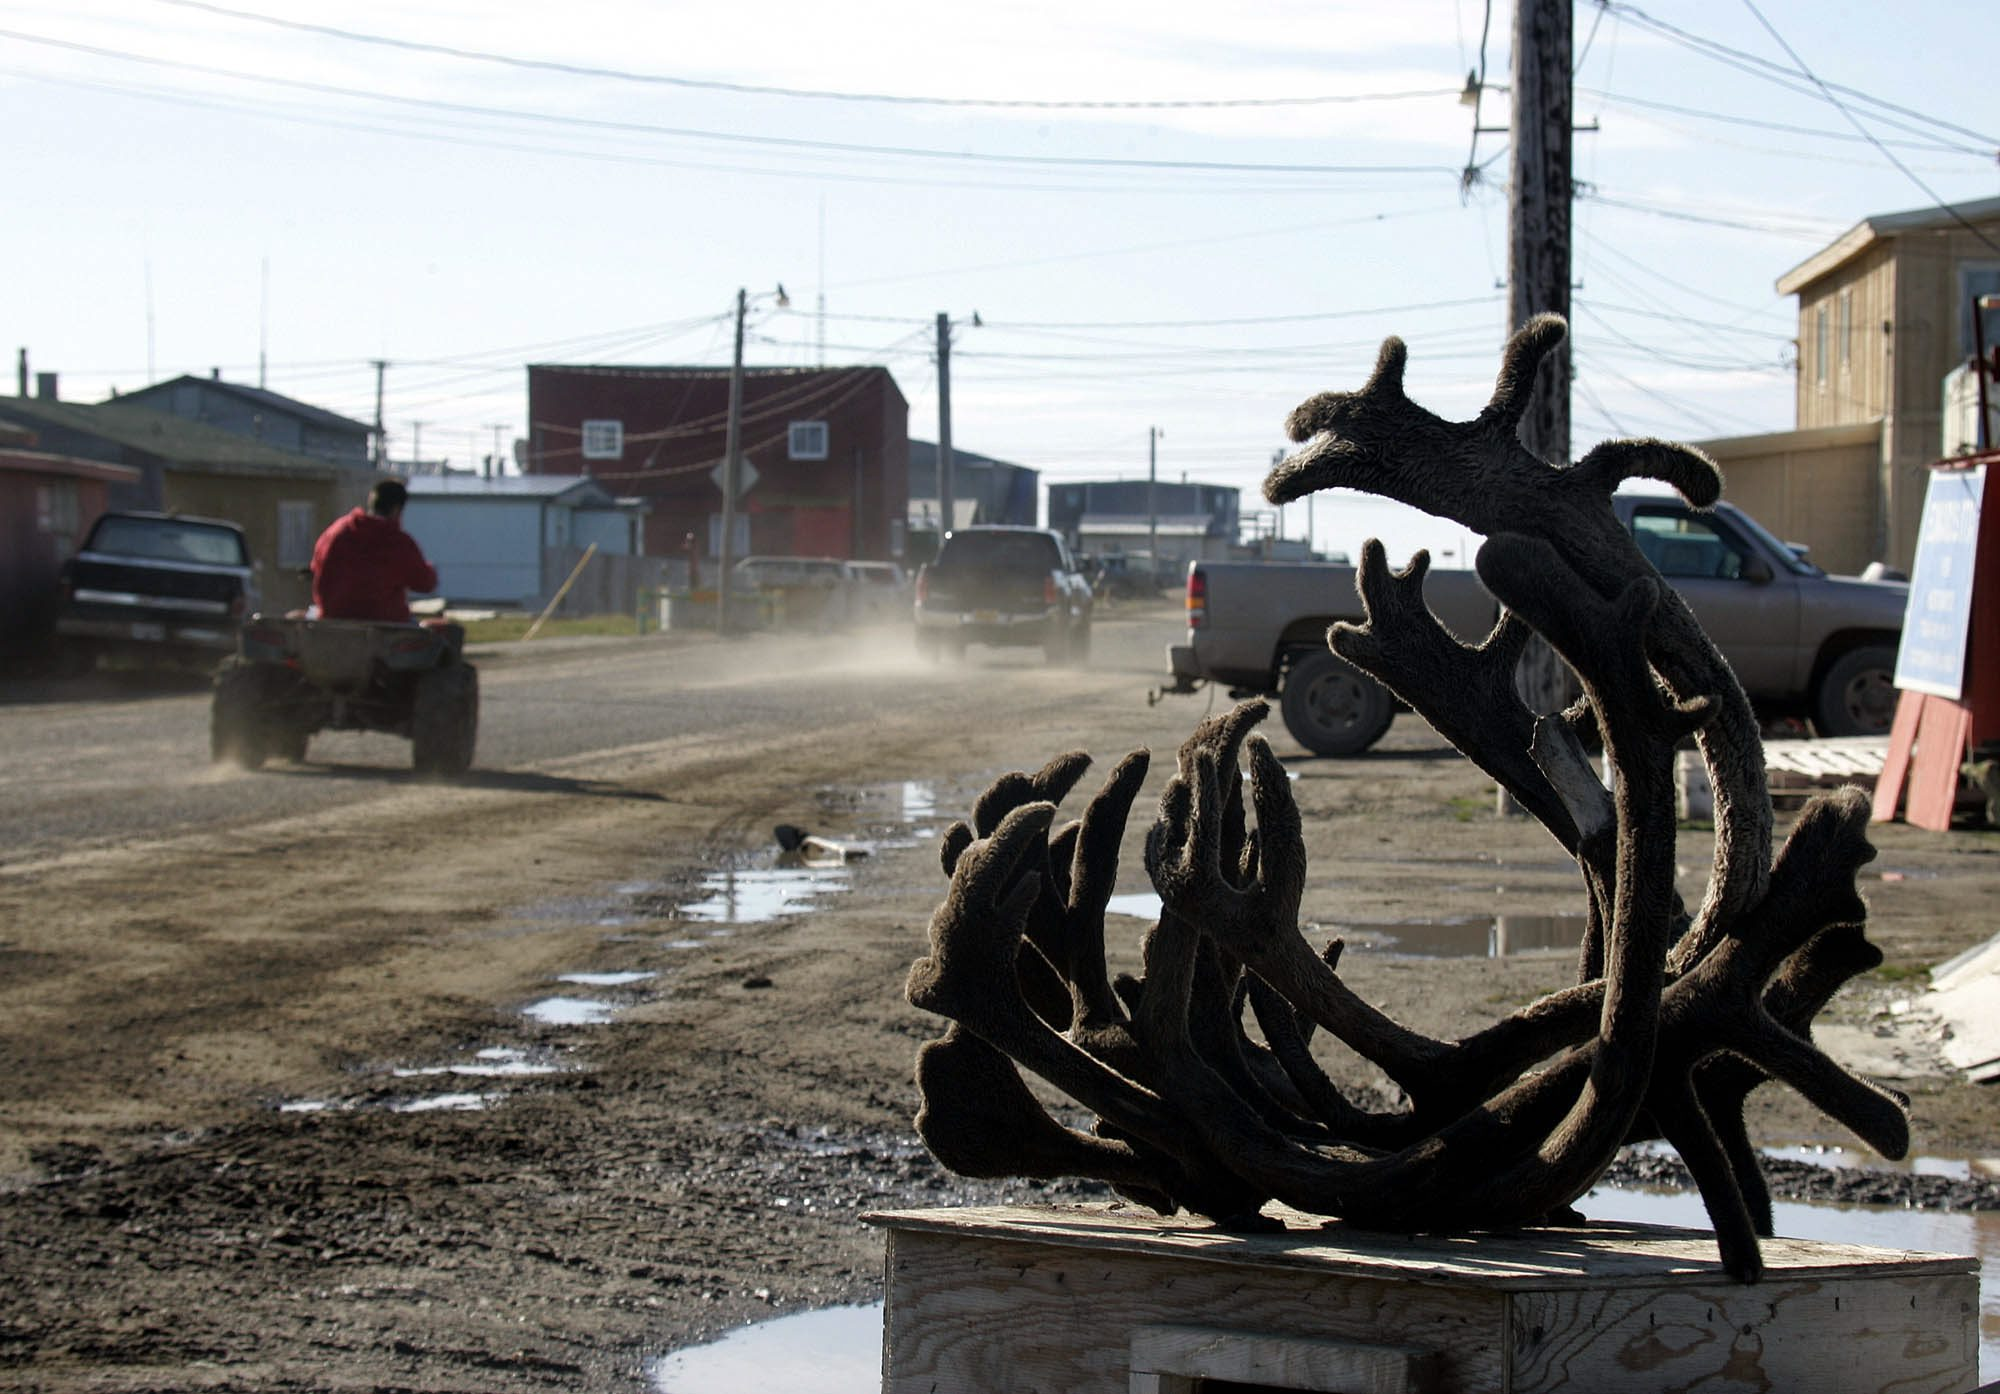 An ATV drives past caribou horns on one of the dirt roads in the Arctic town of Barrow, Alasksa. (Al Grillo / AP)